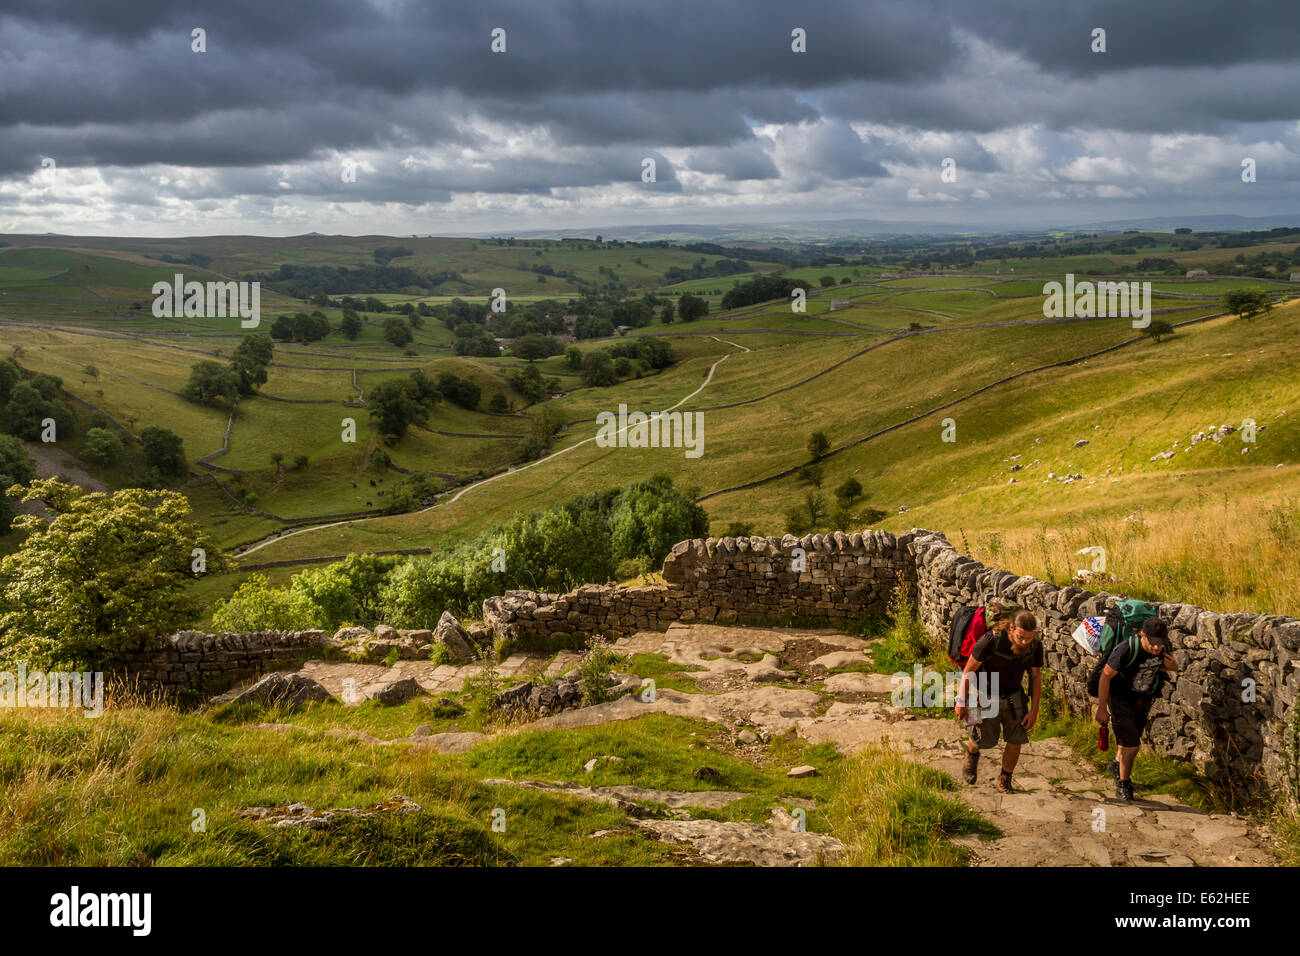 Men socialising - Backpackers ascending the beautiful path by Malham Cove, Yorkshire Dales - Stock Image